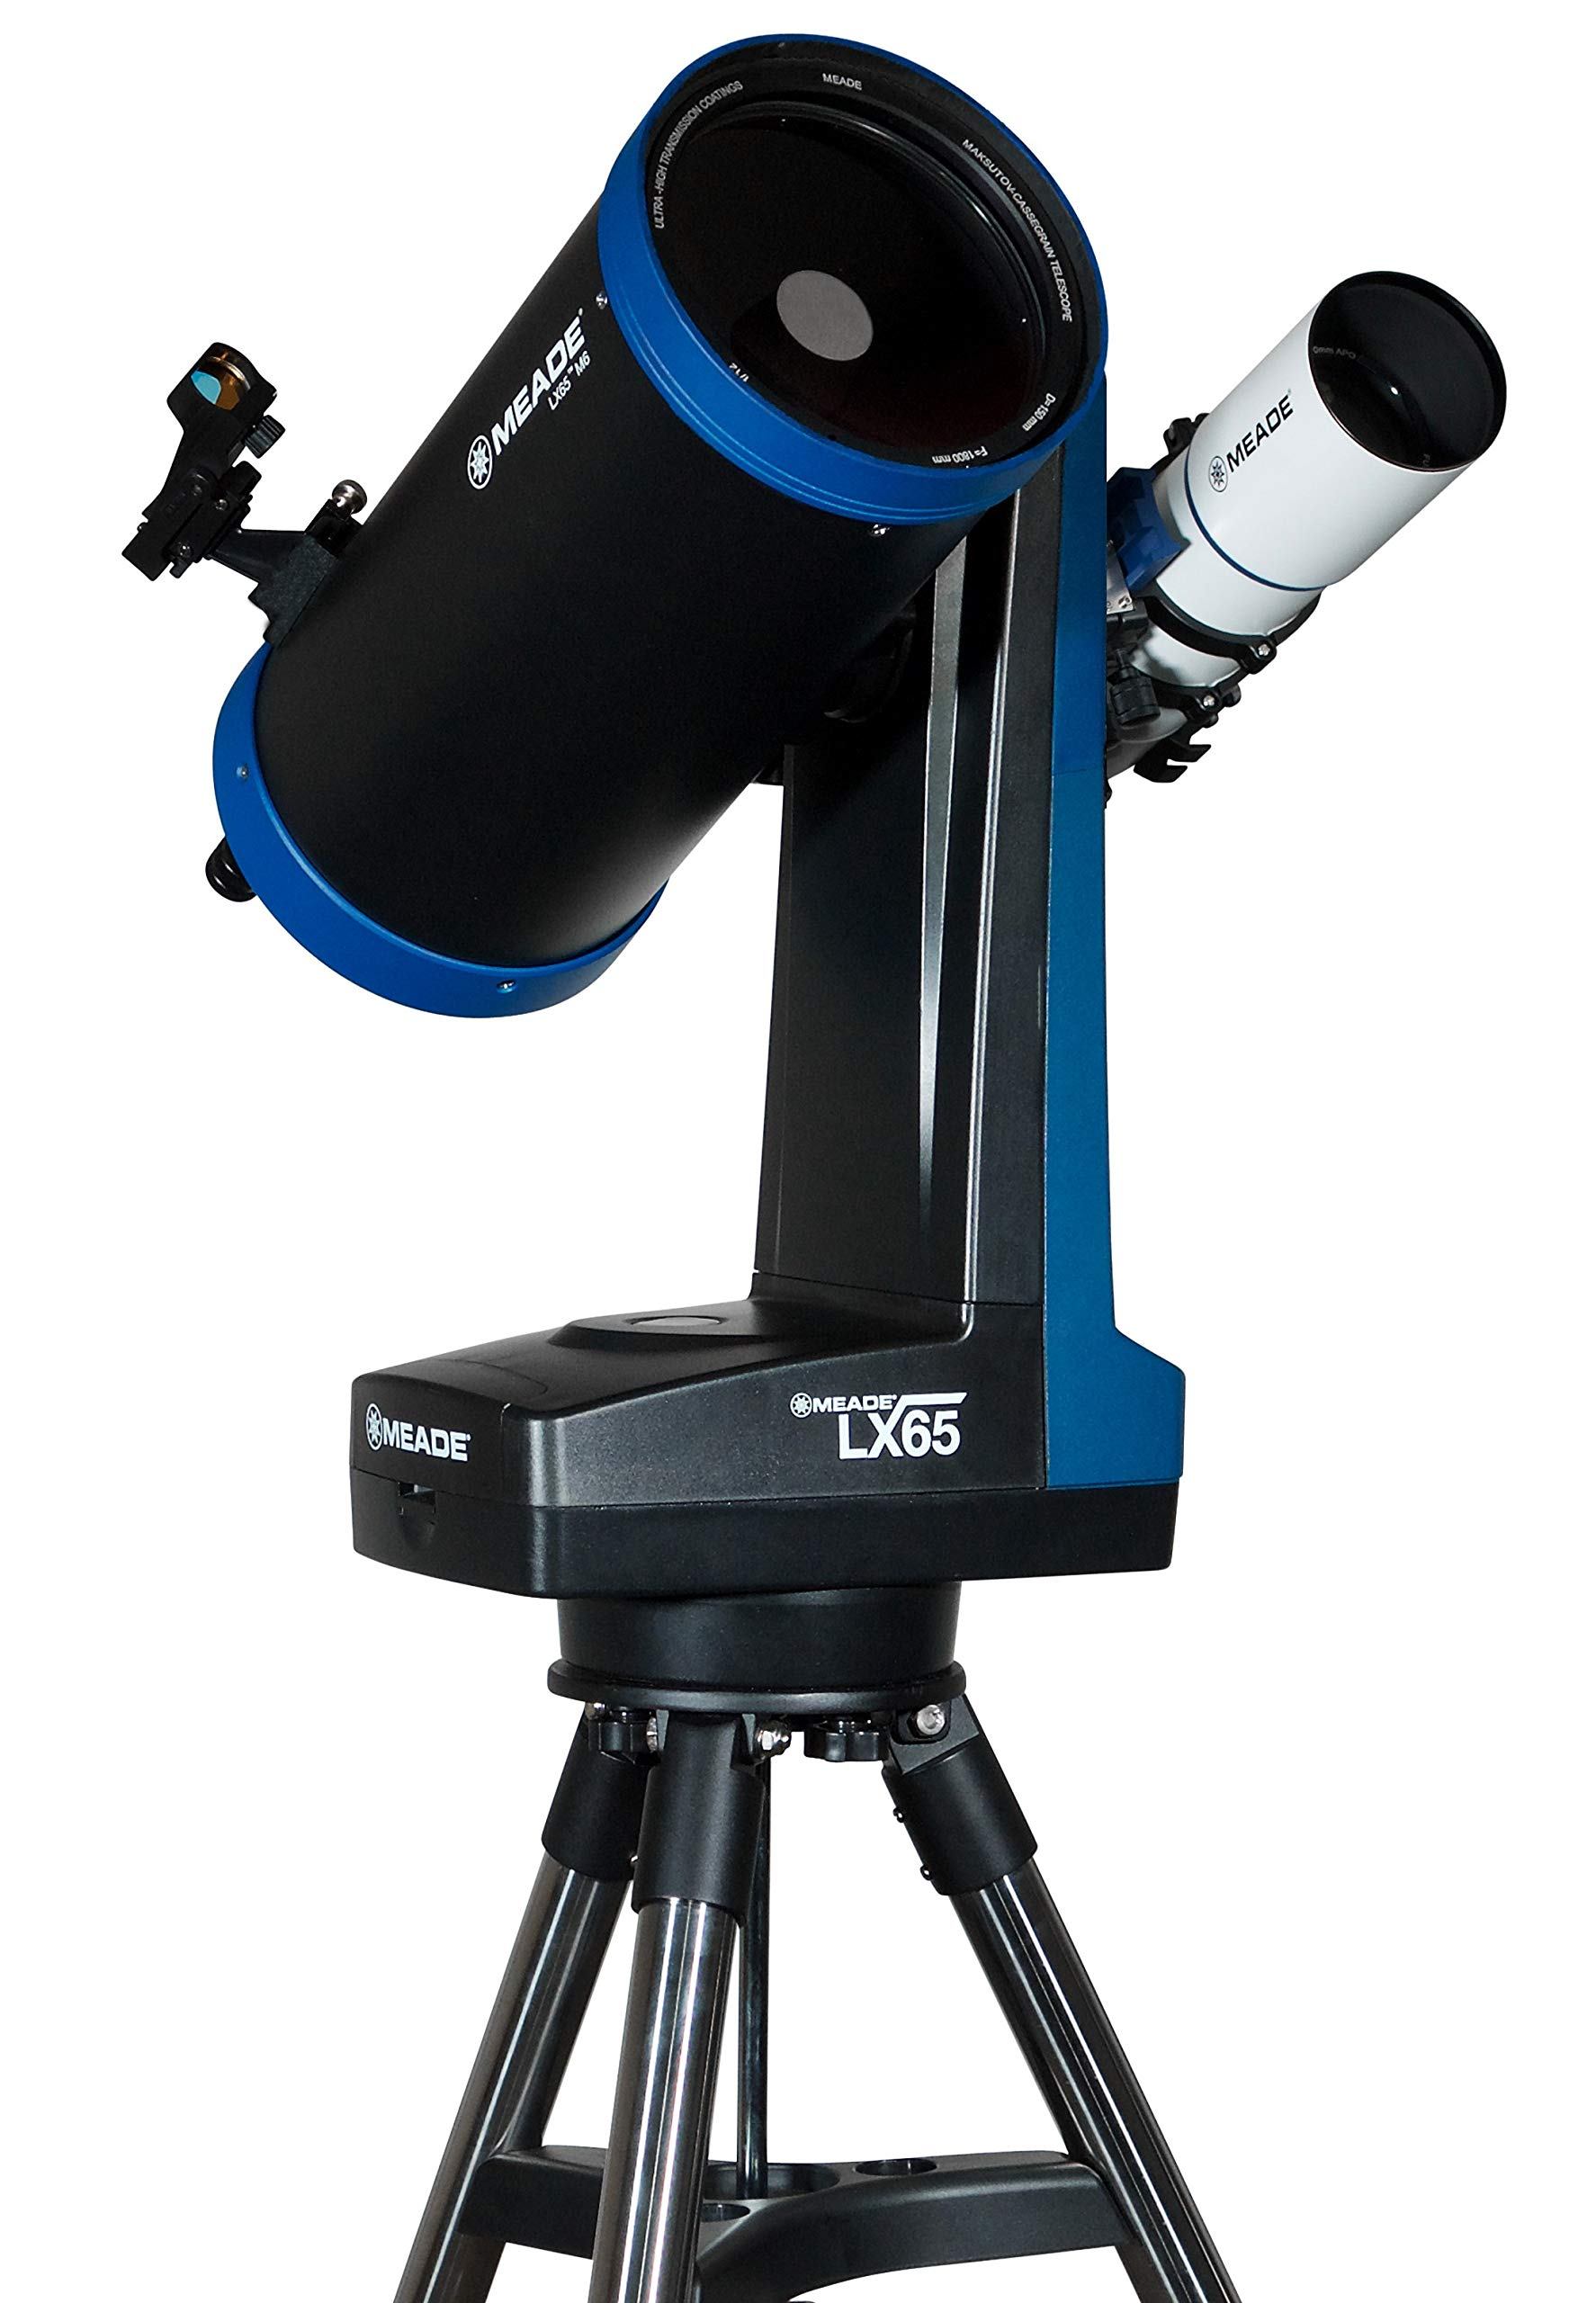 Meade Instruments 228002 Lx65 6 Inch Maksutov-Cassegrain Telescope with AudioStar by MEADE